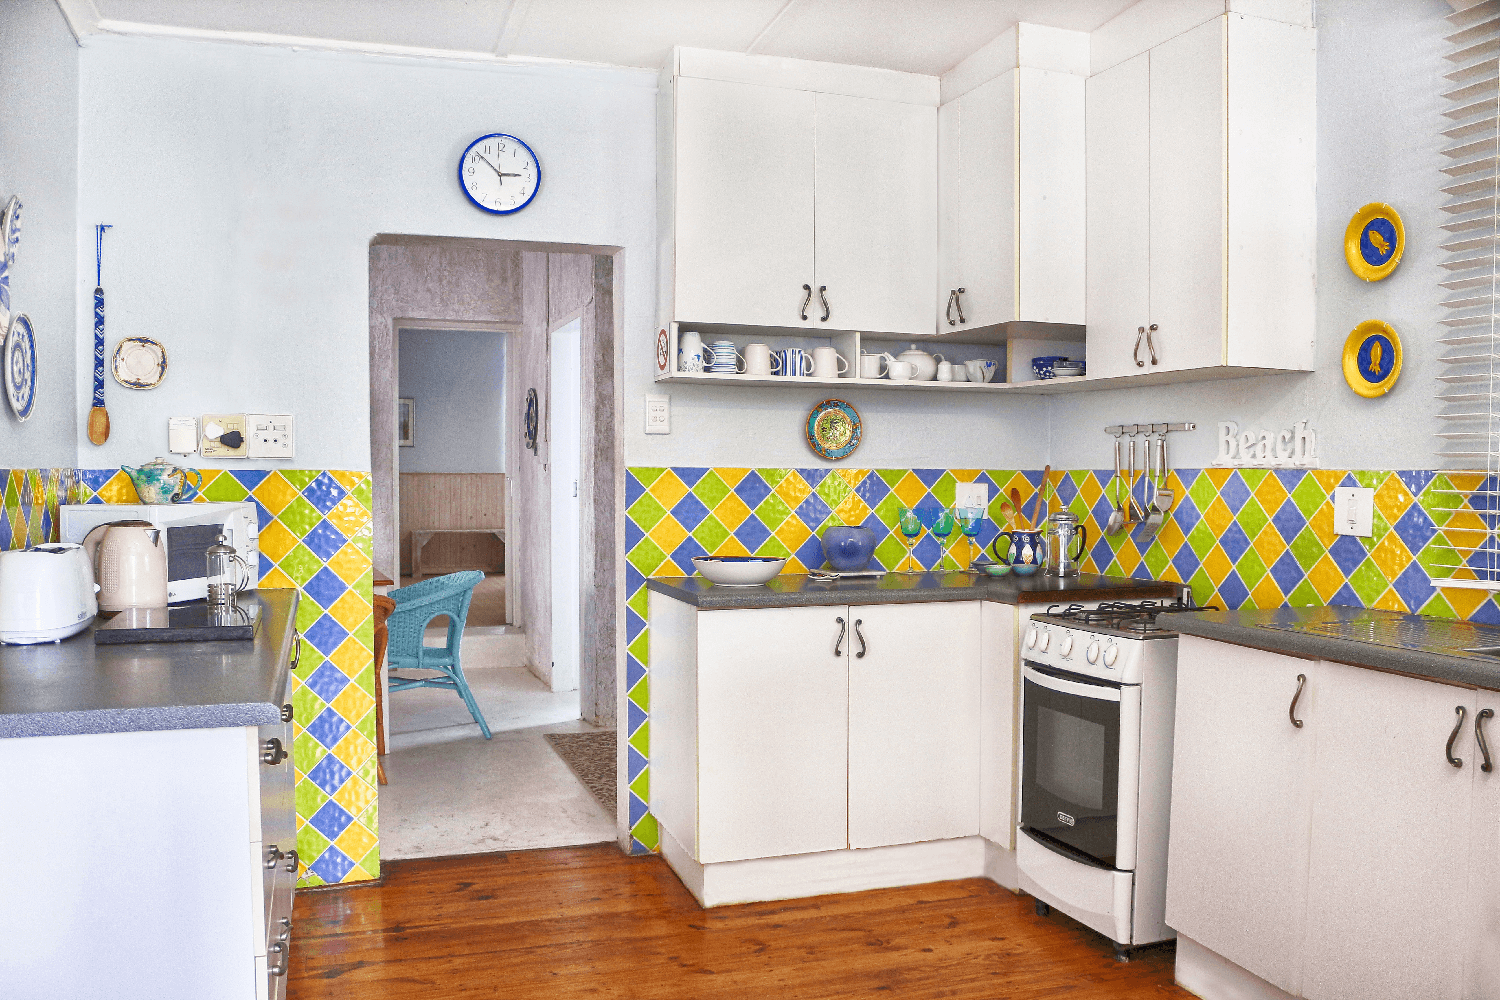 Kenton on sea Beach Cottages Accommodation – Out of the Blue – Kitchen (2)